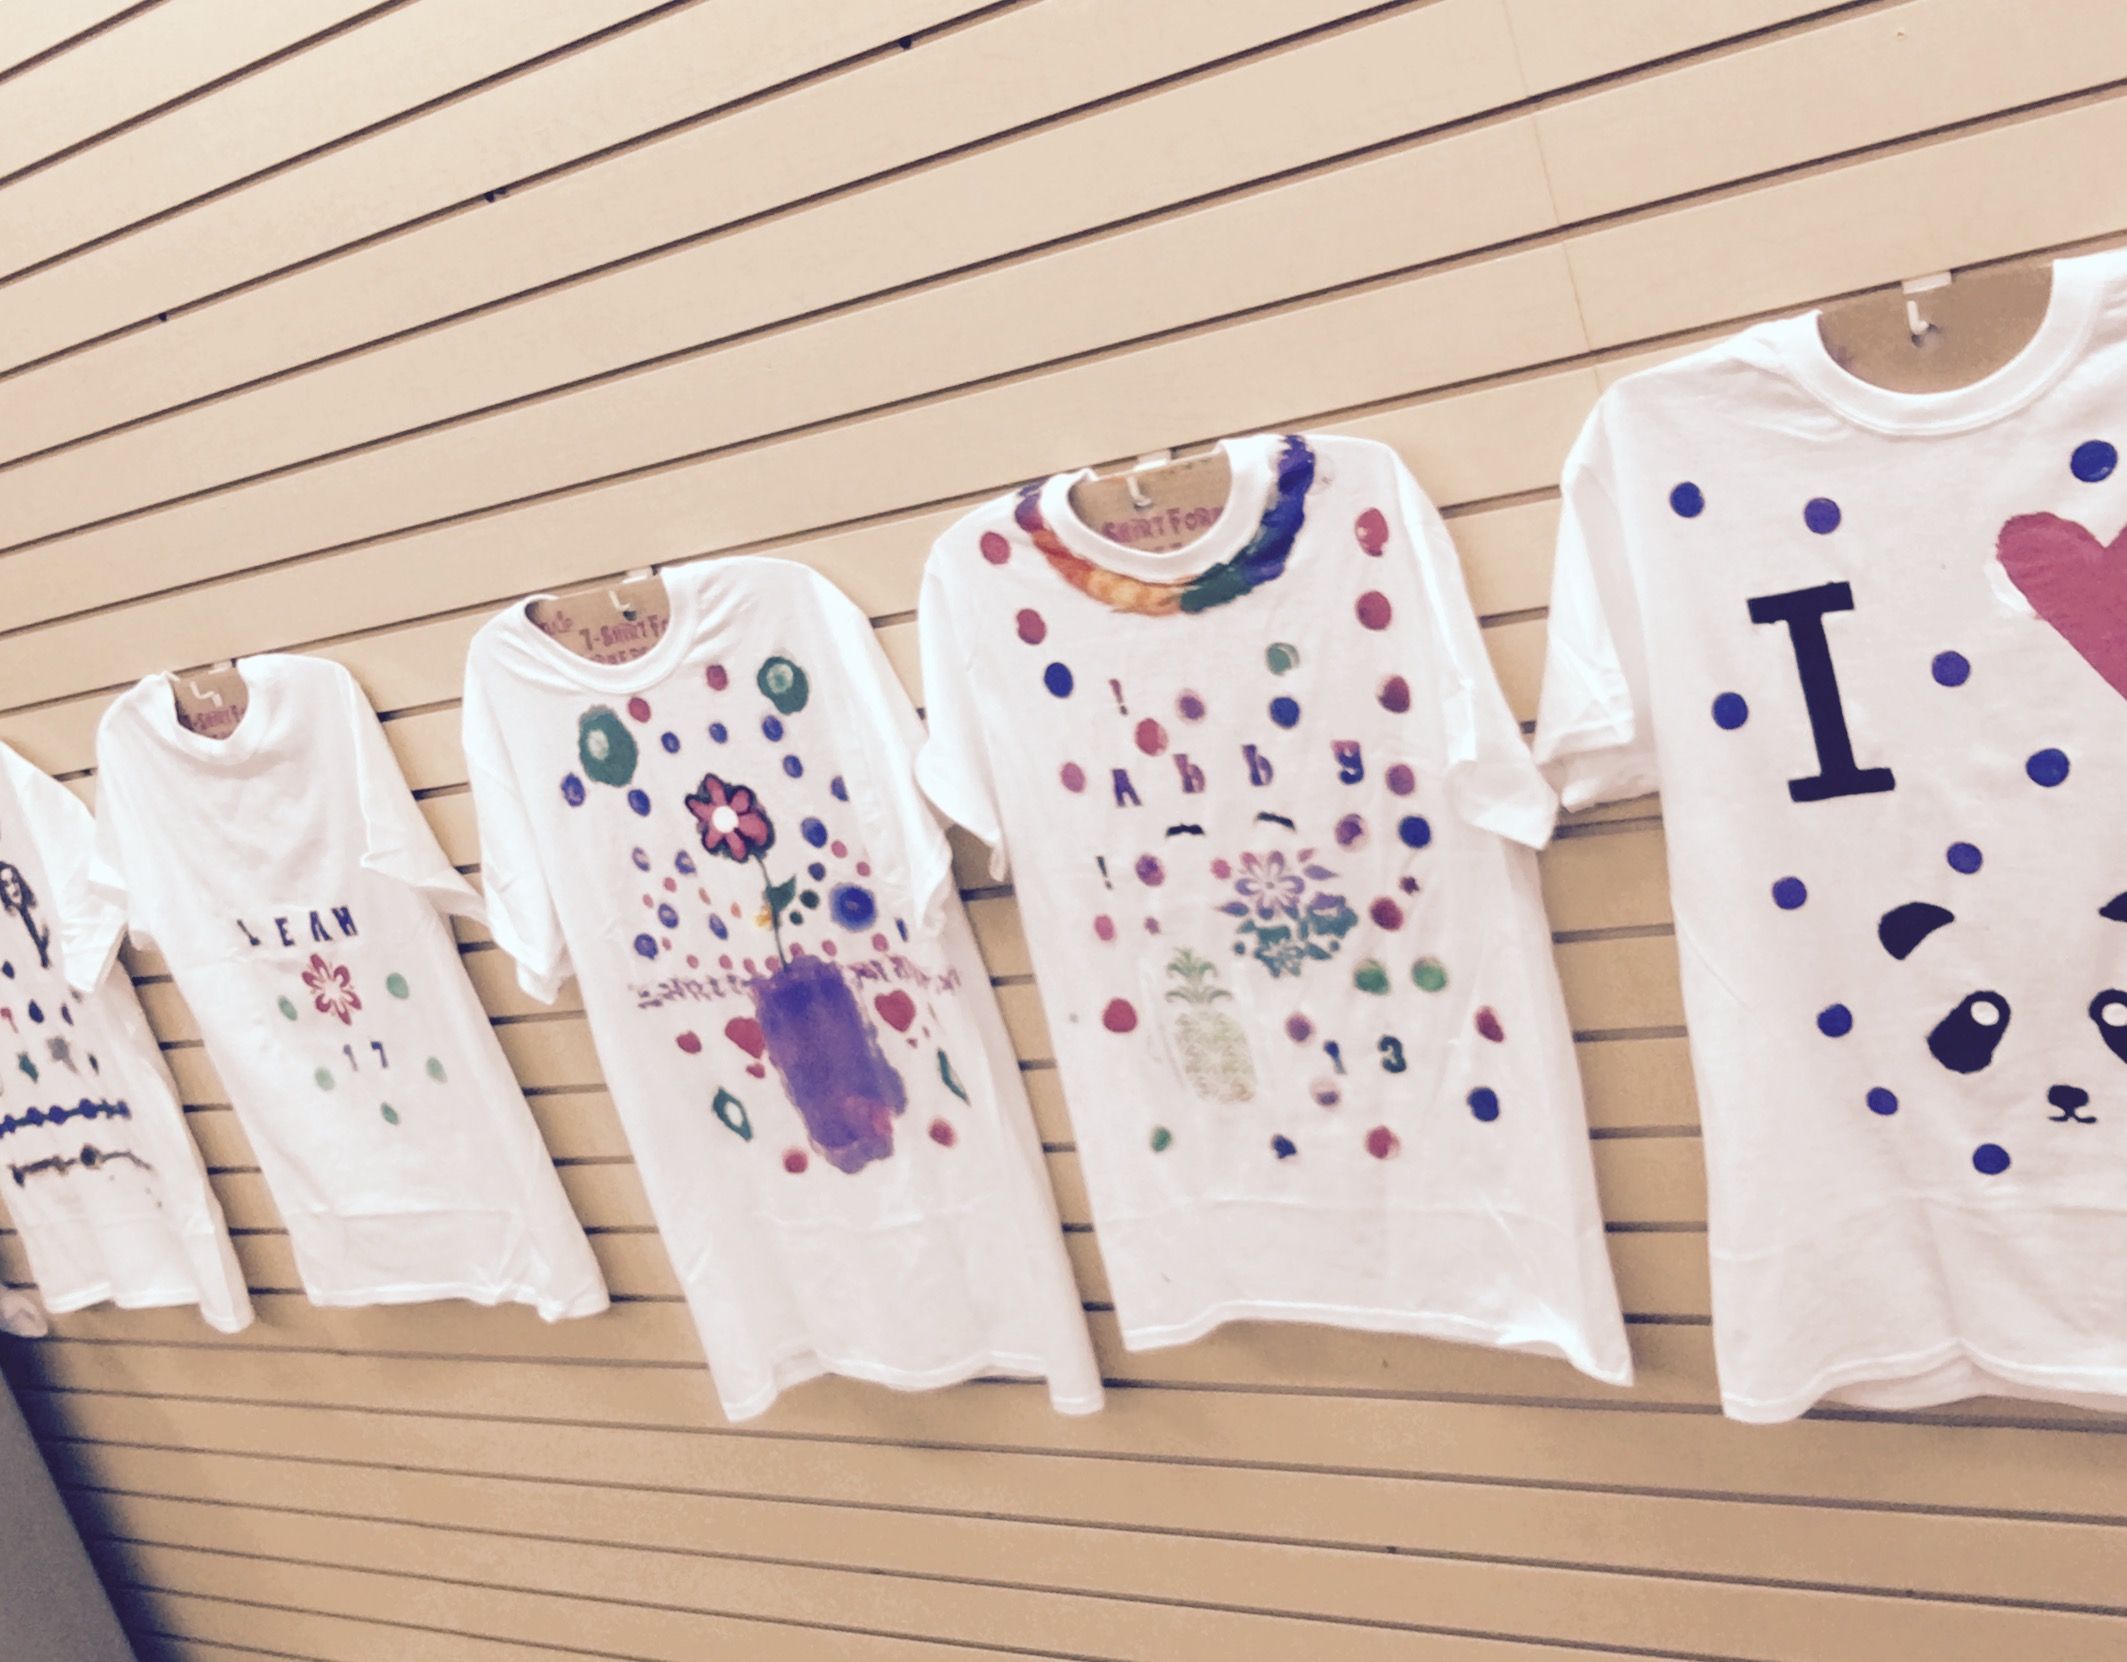 Tulip Fabric Spray Paint Ideas Part - 40: Items Needed: ~Stencils (Letters, Designs/Shapes) ~Fabric Spray Paint  (Brand: Tulip) ~Fabric Paint (Brand: Tulip) ~T-Shirt Board Or Cardboard (To  Keep The ...